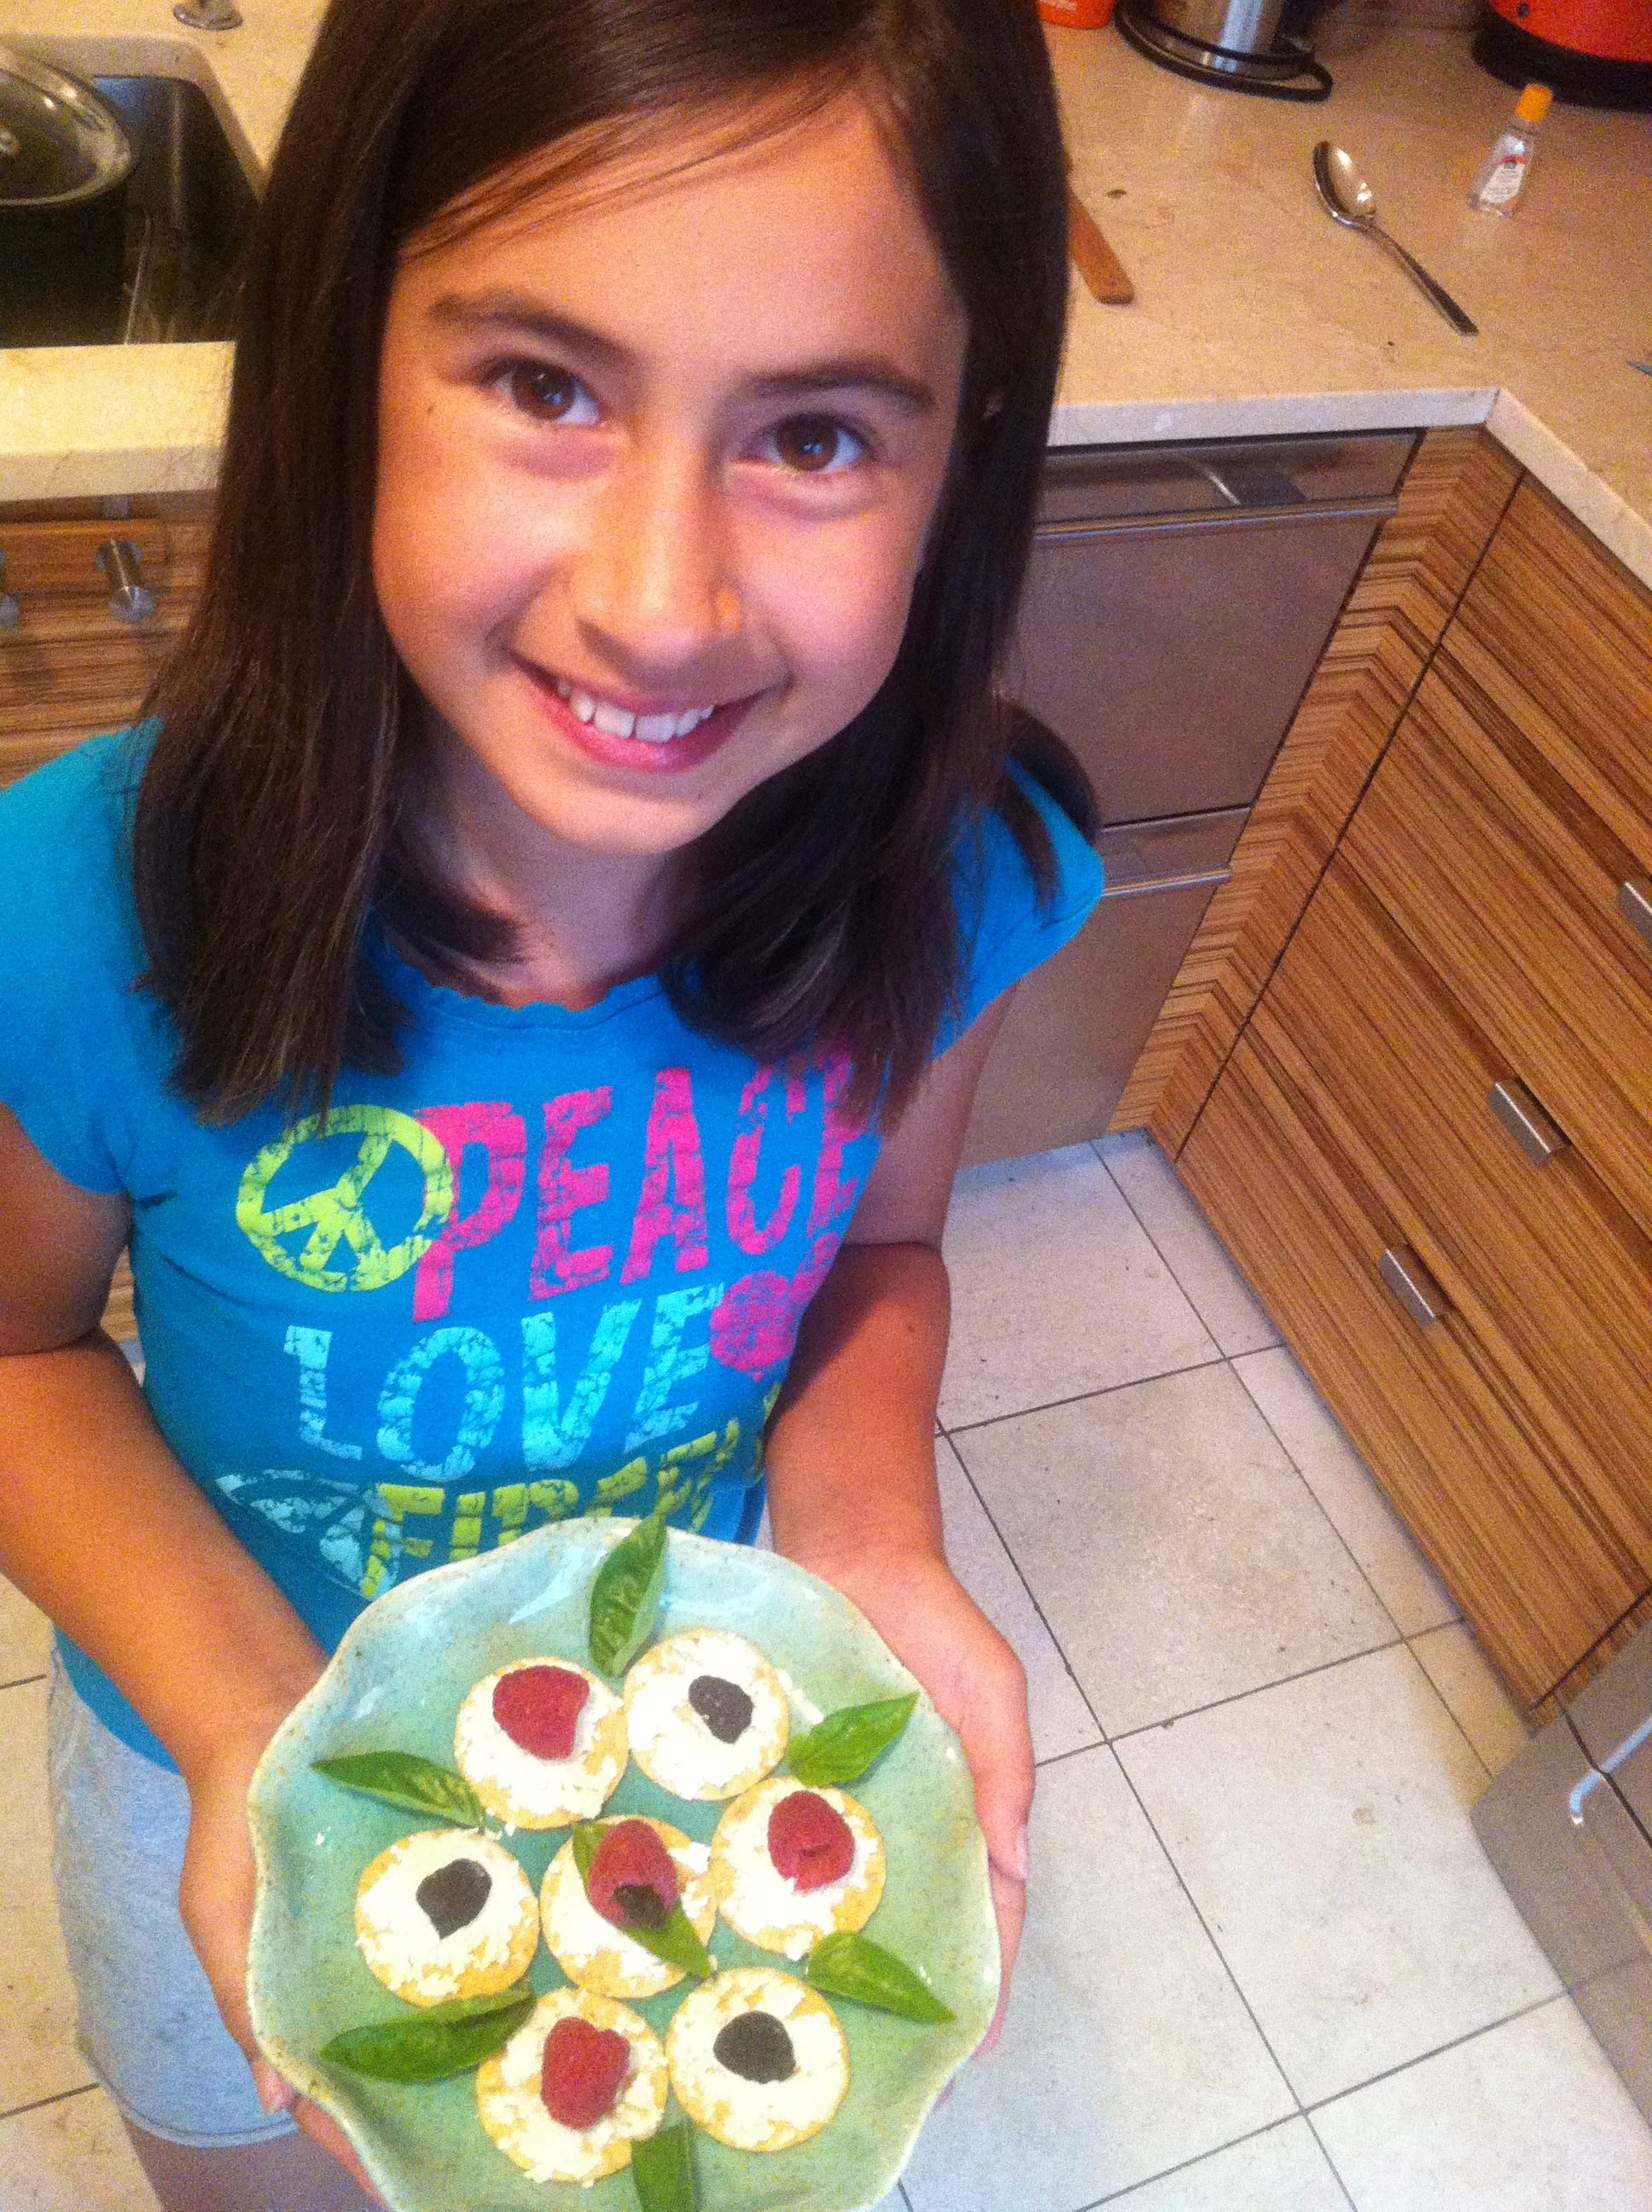 The Good Earth: Healthy Eating for My Daughter